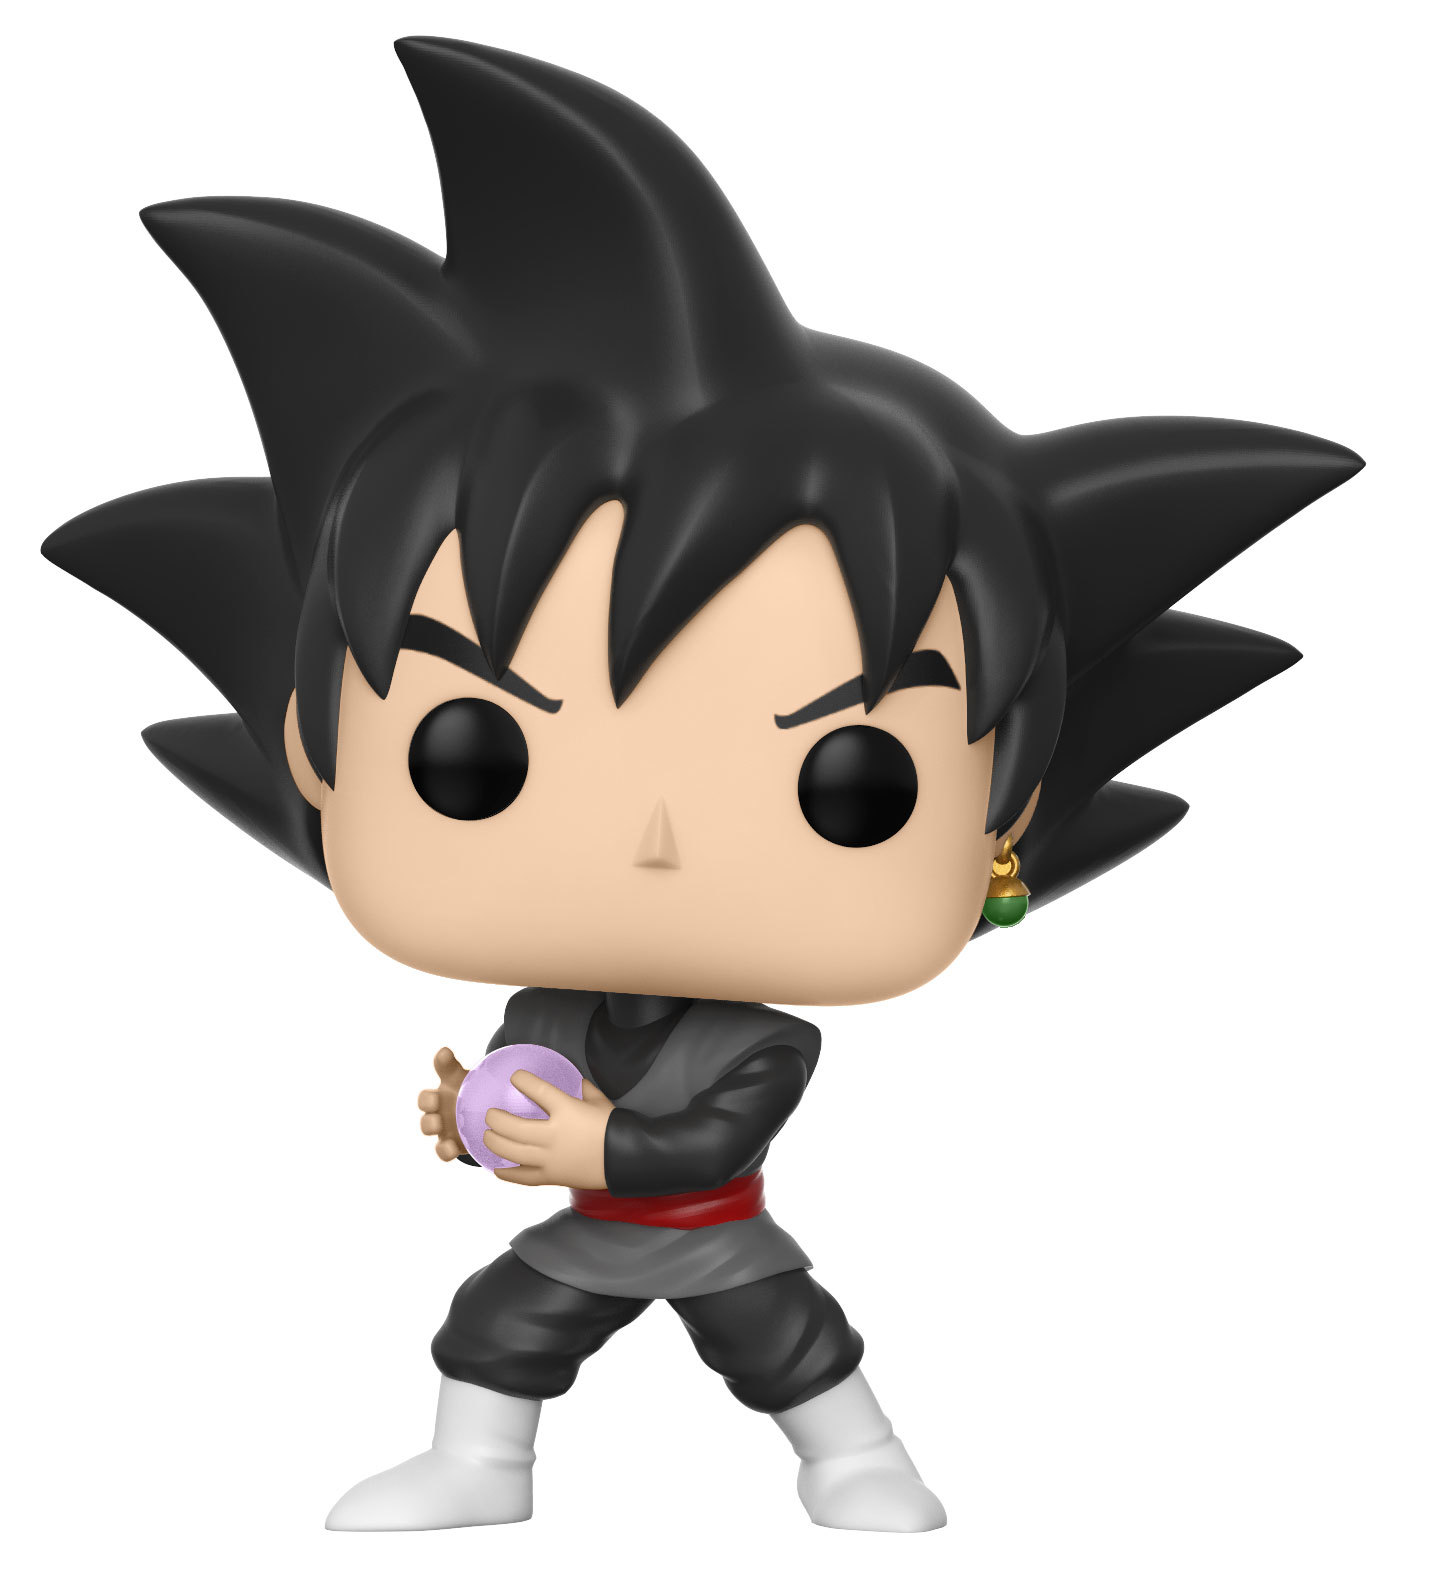 Dragon Ball Super – Goku Black Pop! Vinyl Figure image